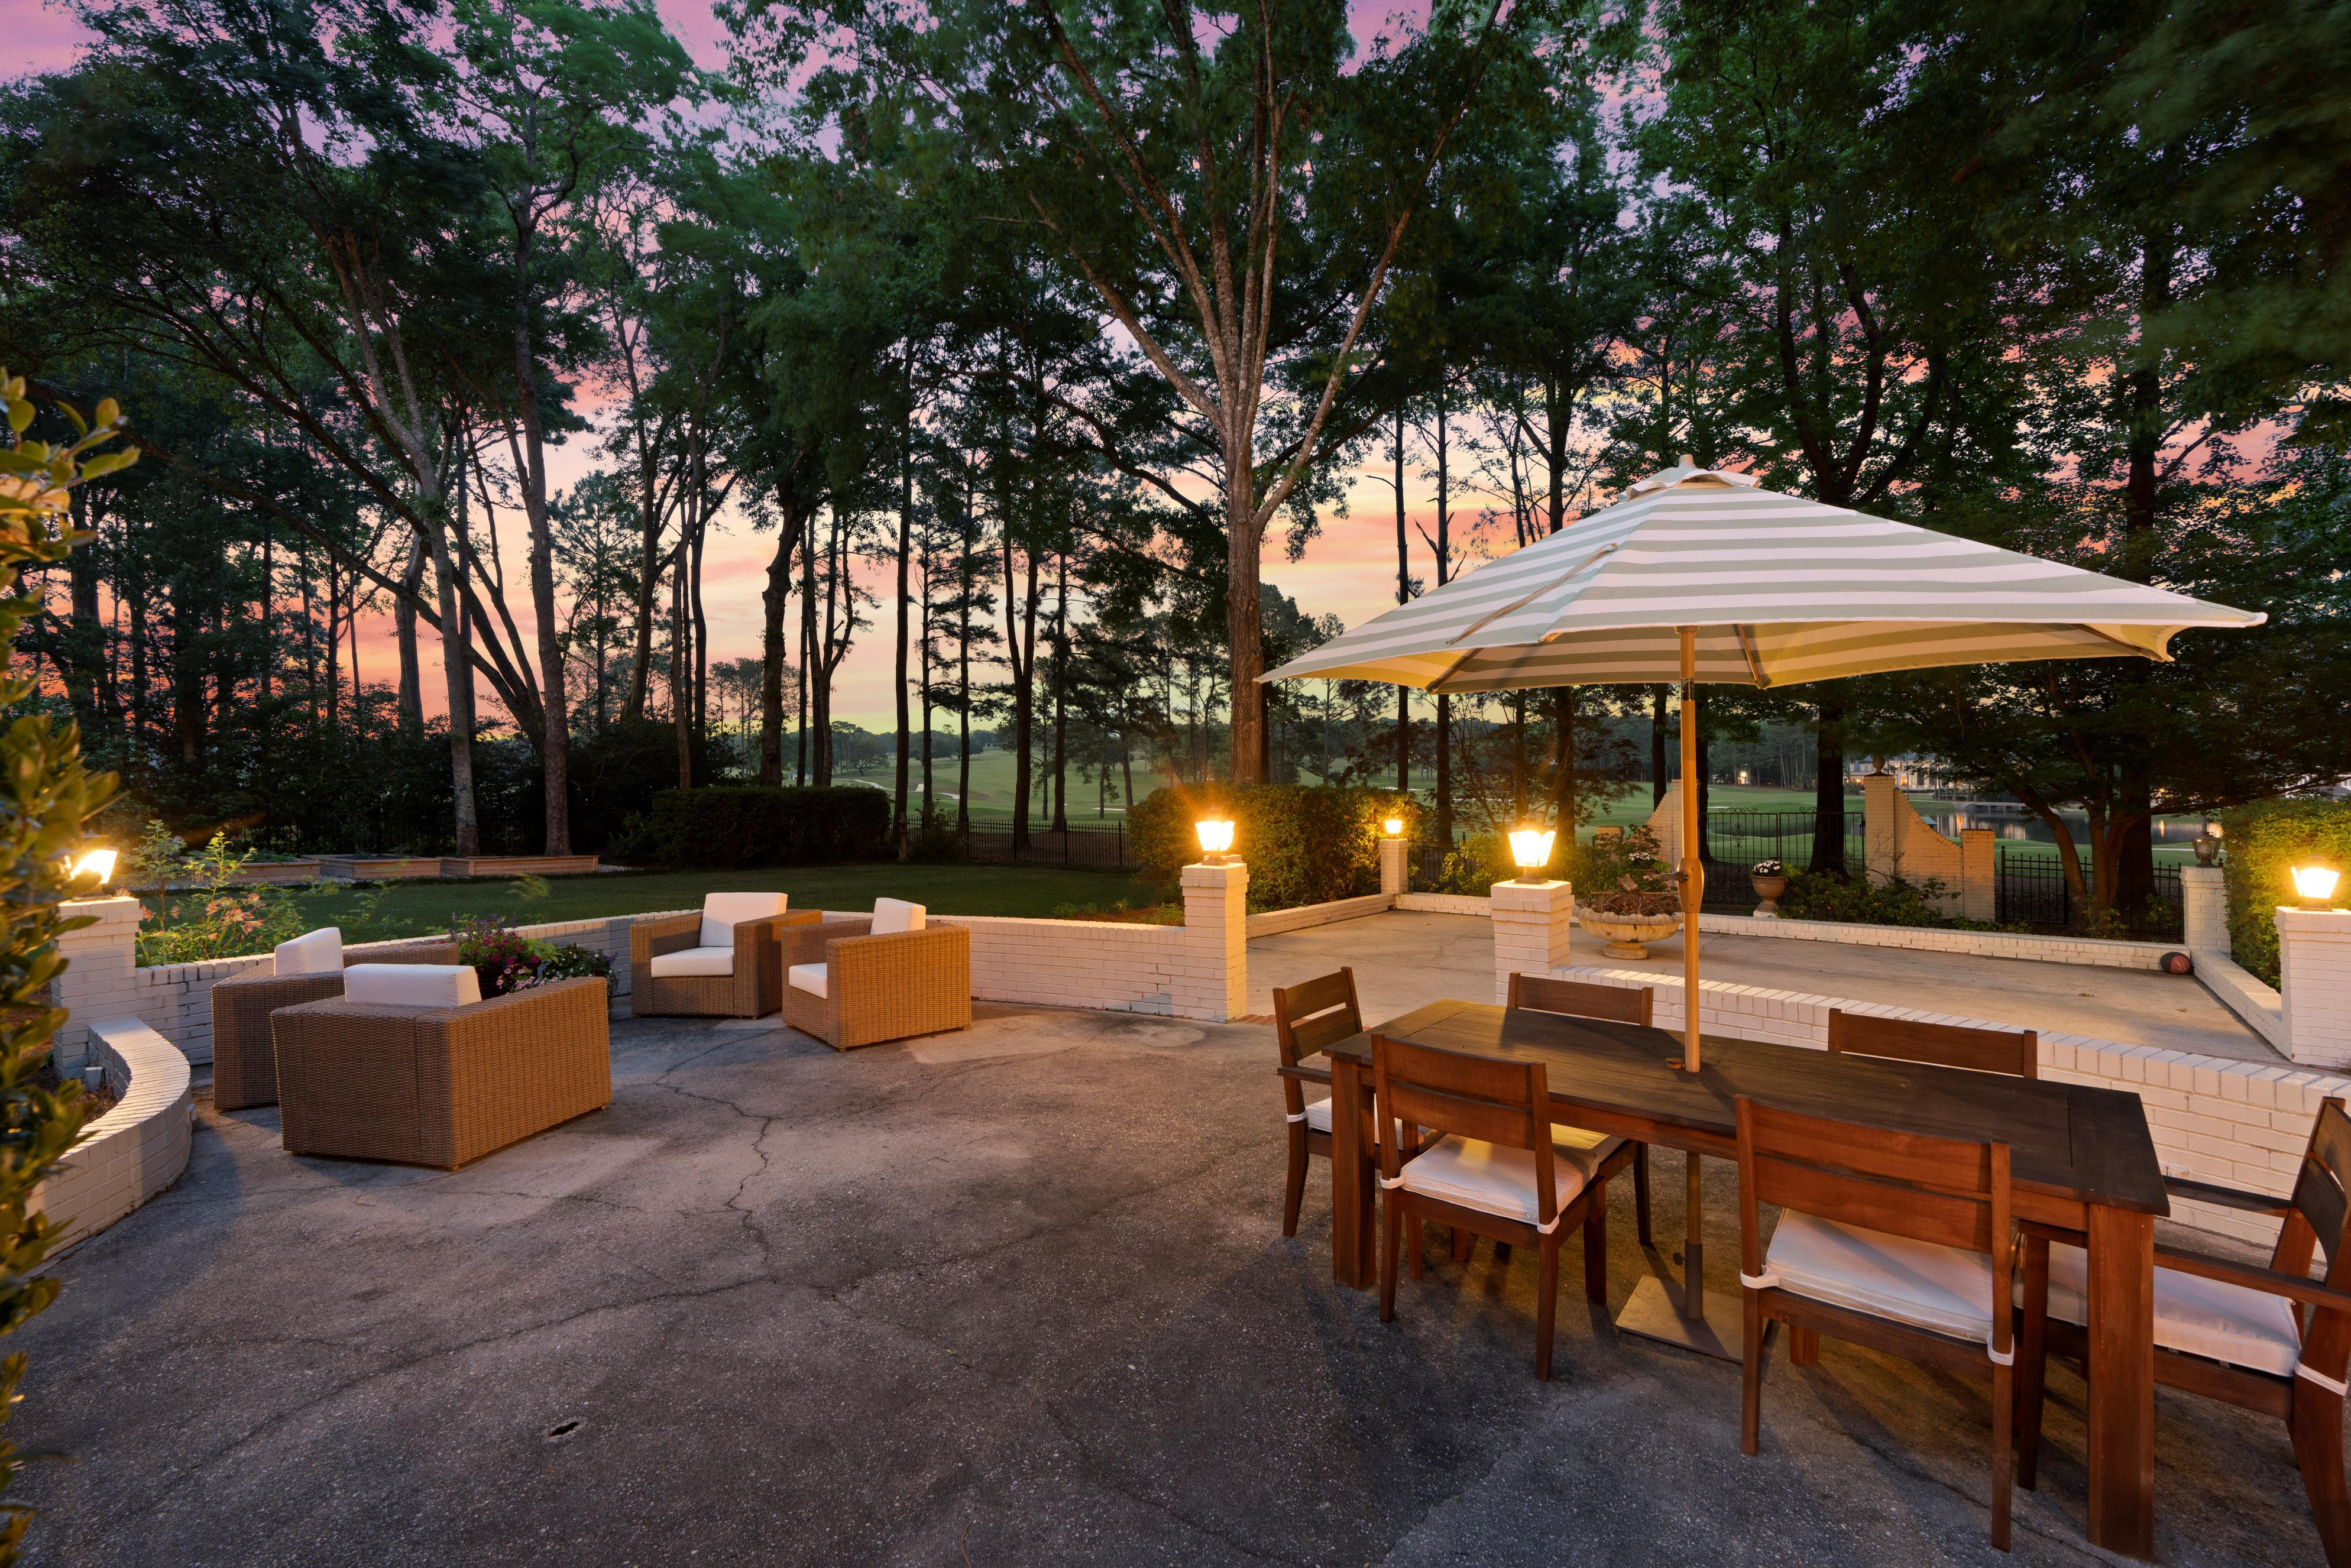 Real Estate Exterior Patio at Sunset looking at golf course